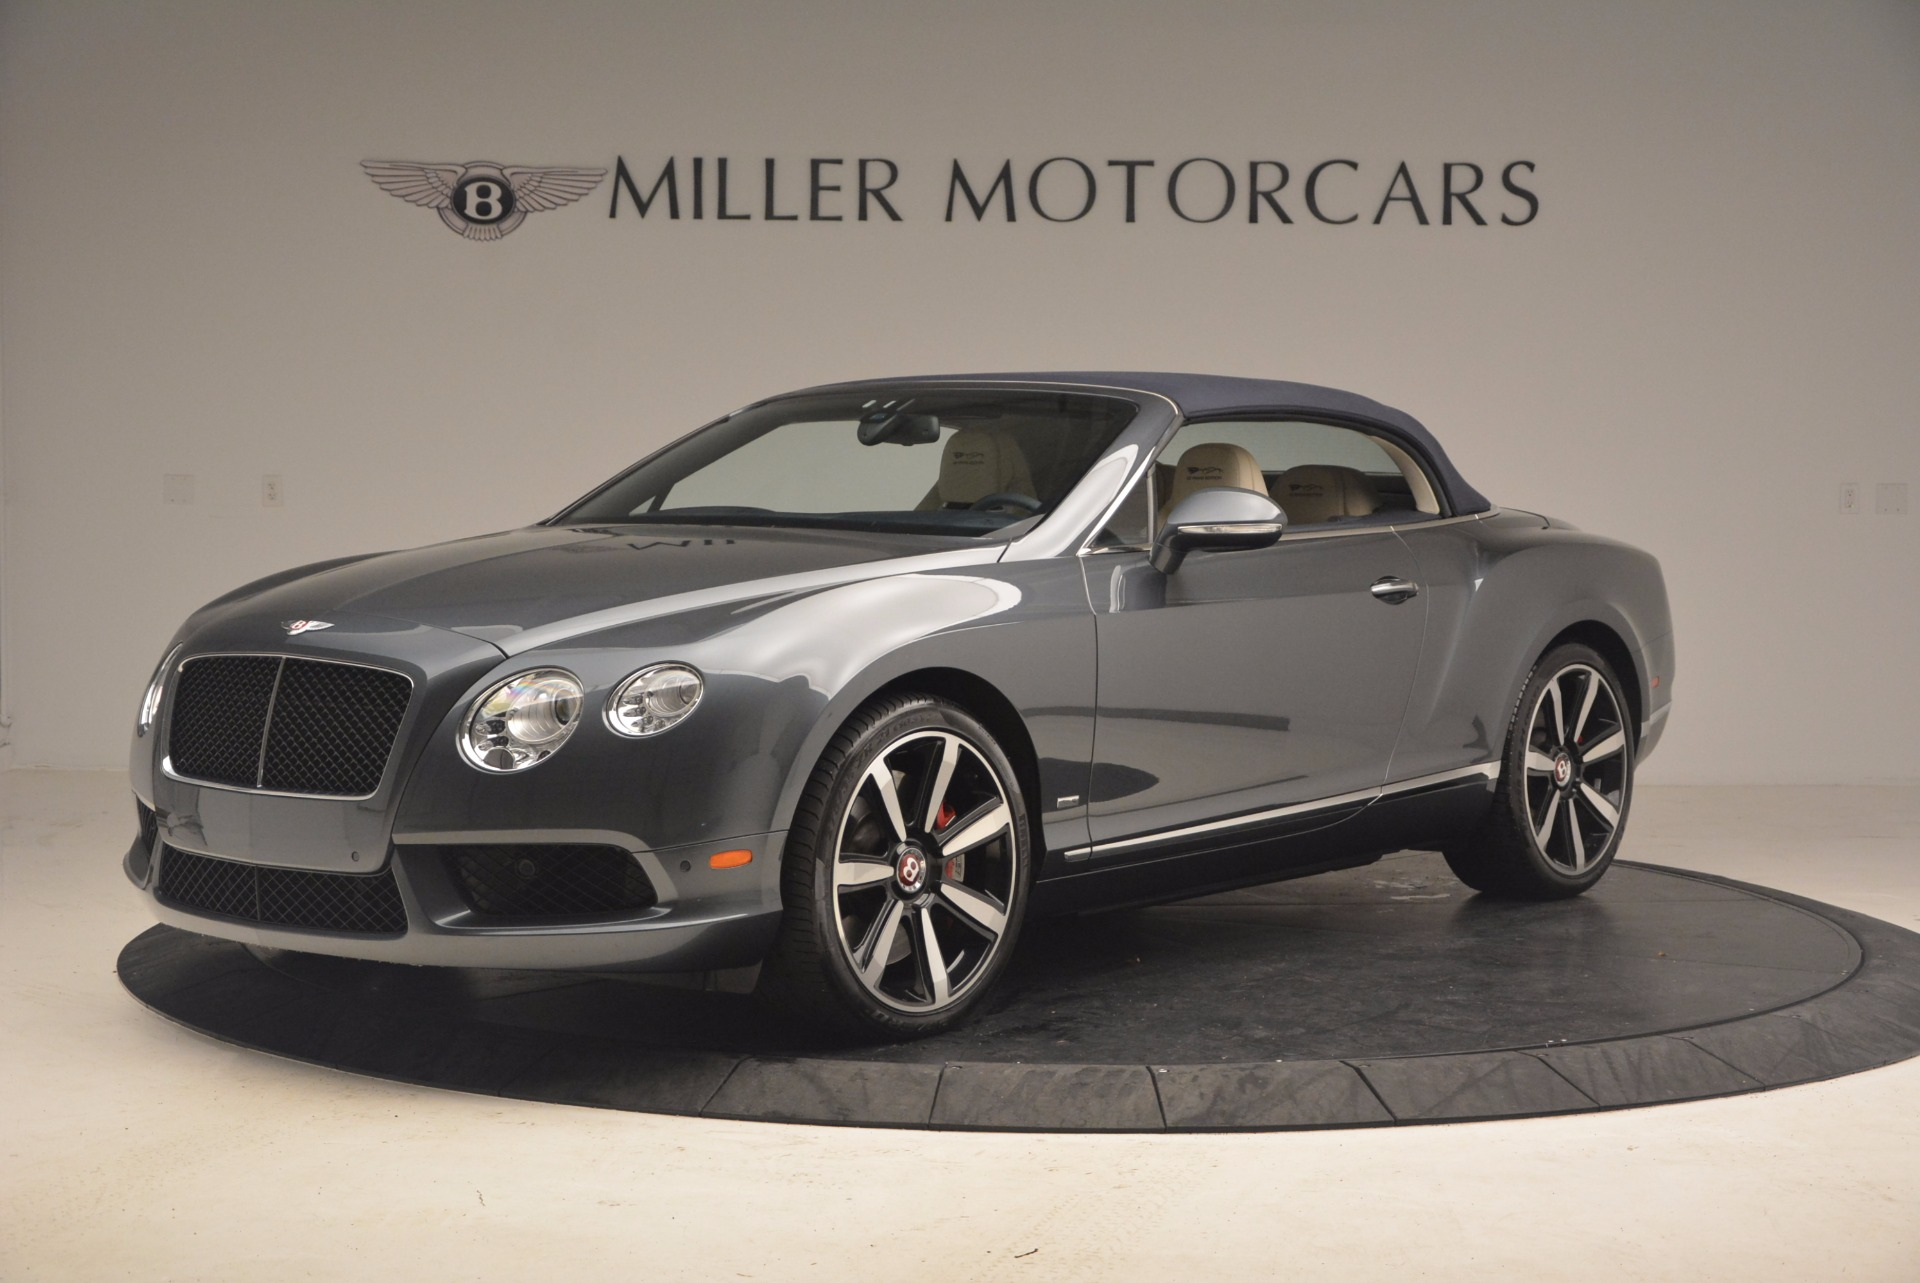 Used 2013 Bentley Continental GT V8 Le Mans Edition, 1 of 48 For Sale In Greenwich, CT 1288_p15